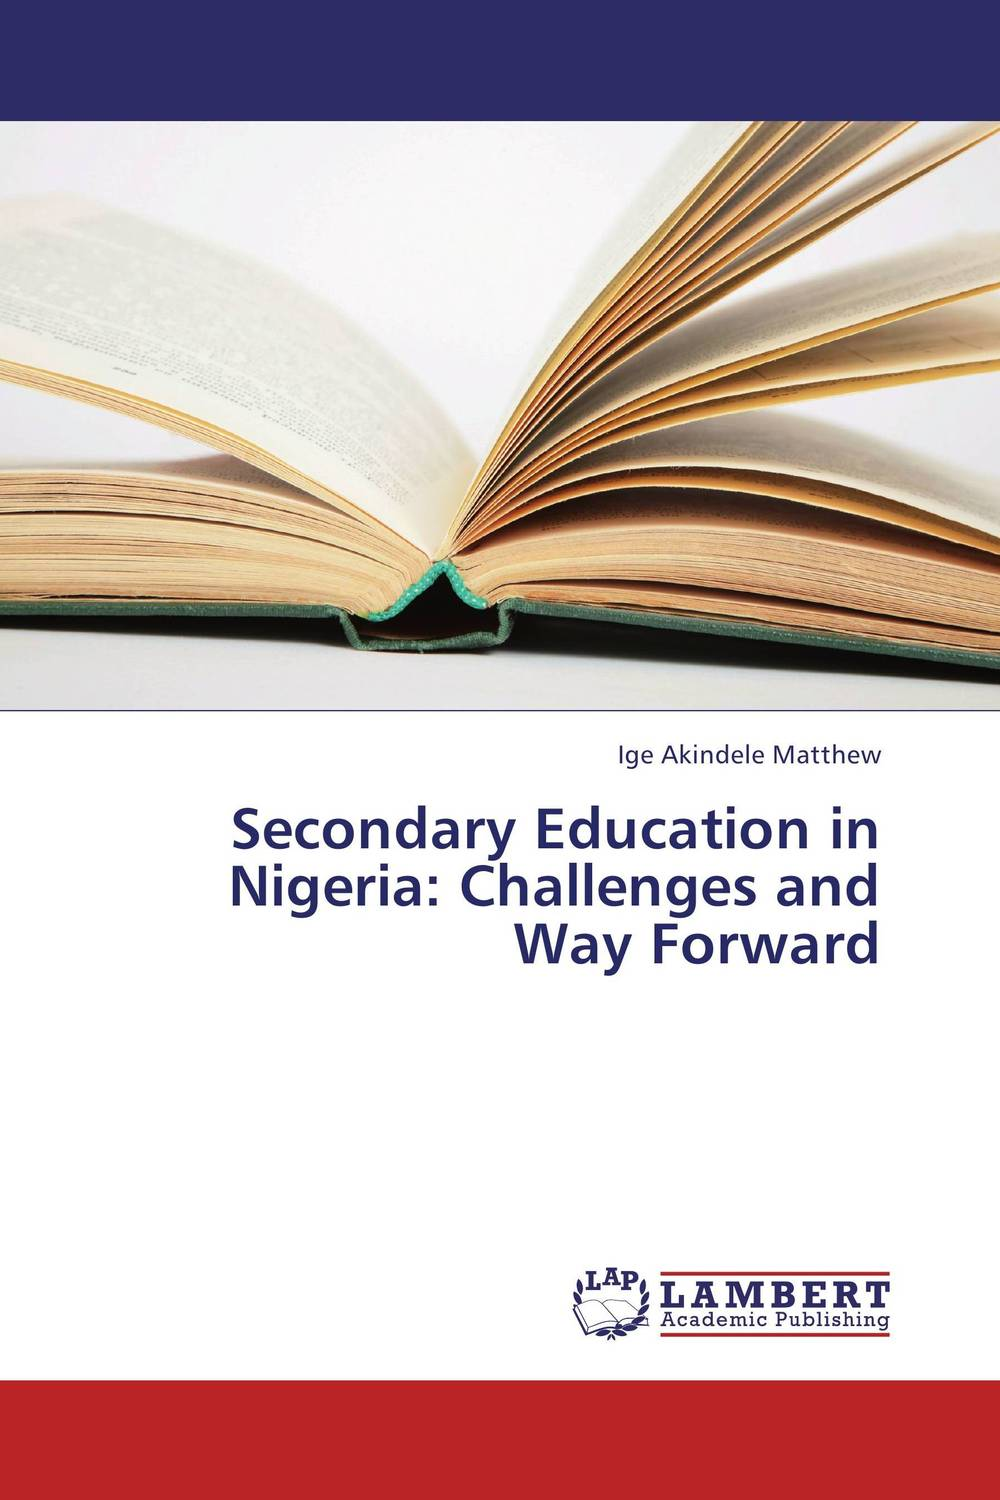 Secondary Education in Nigeria: Challenges and Way Forward administrative challenges facing public secondary schools